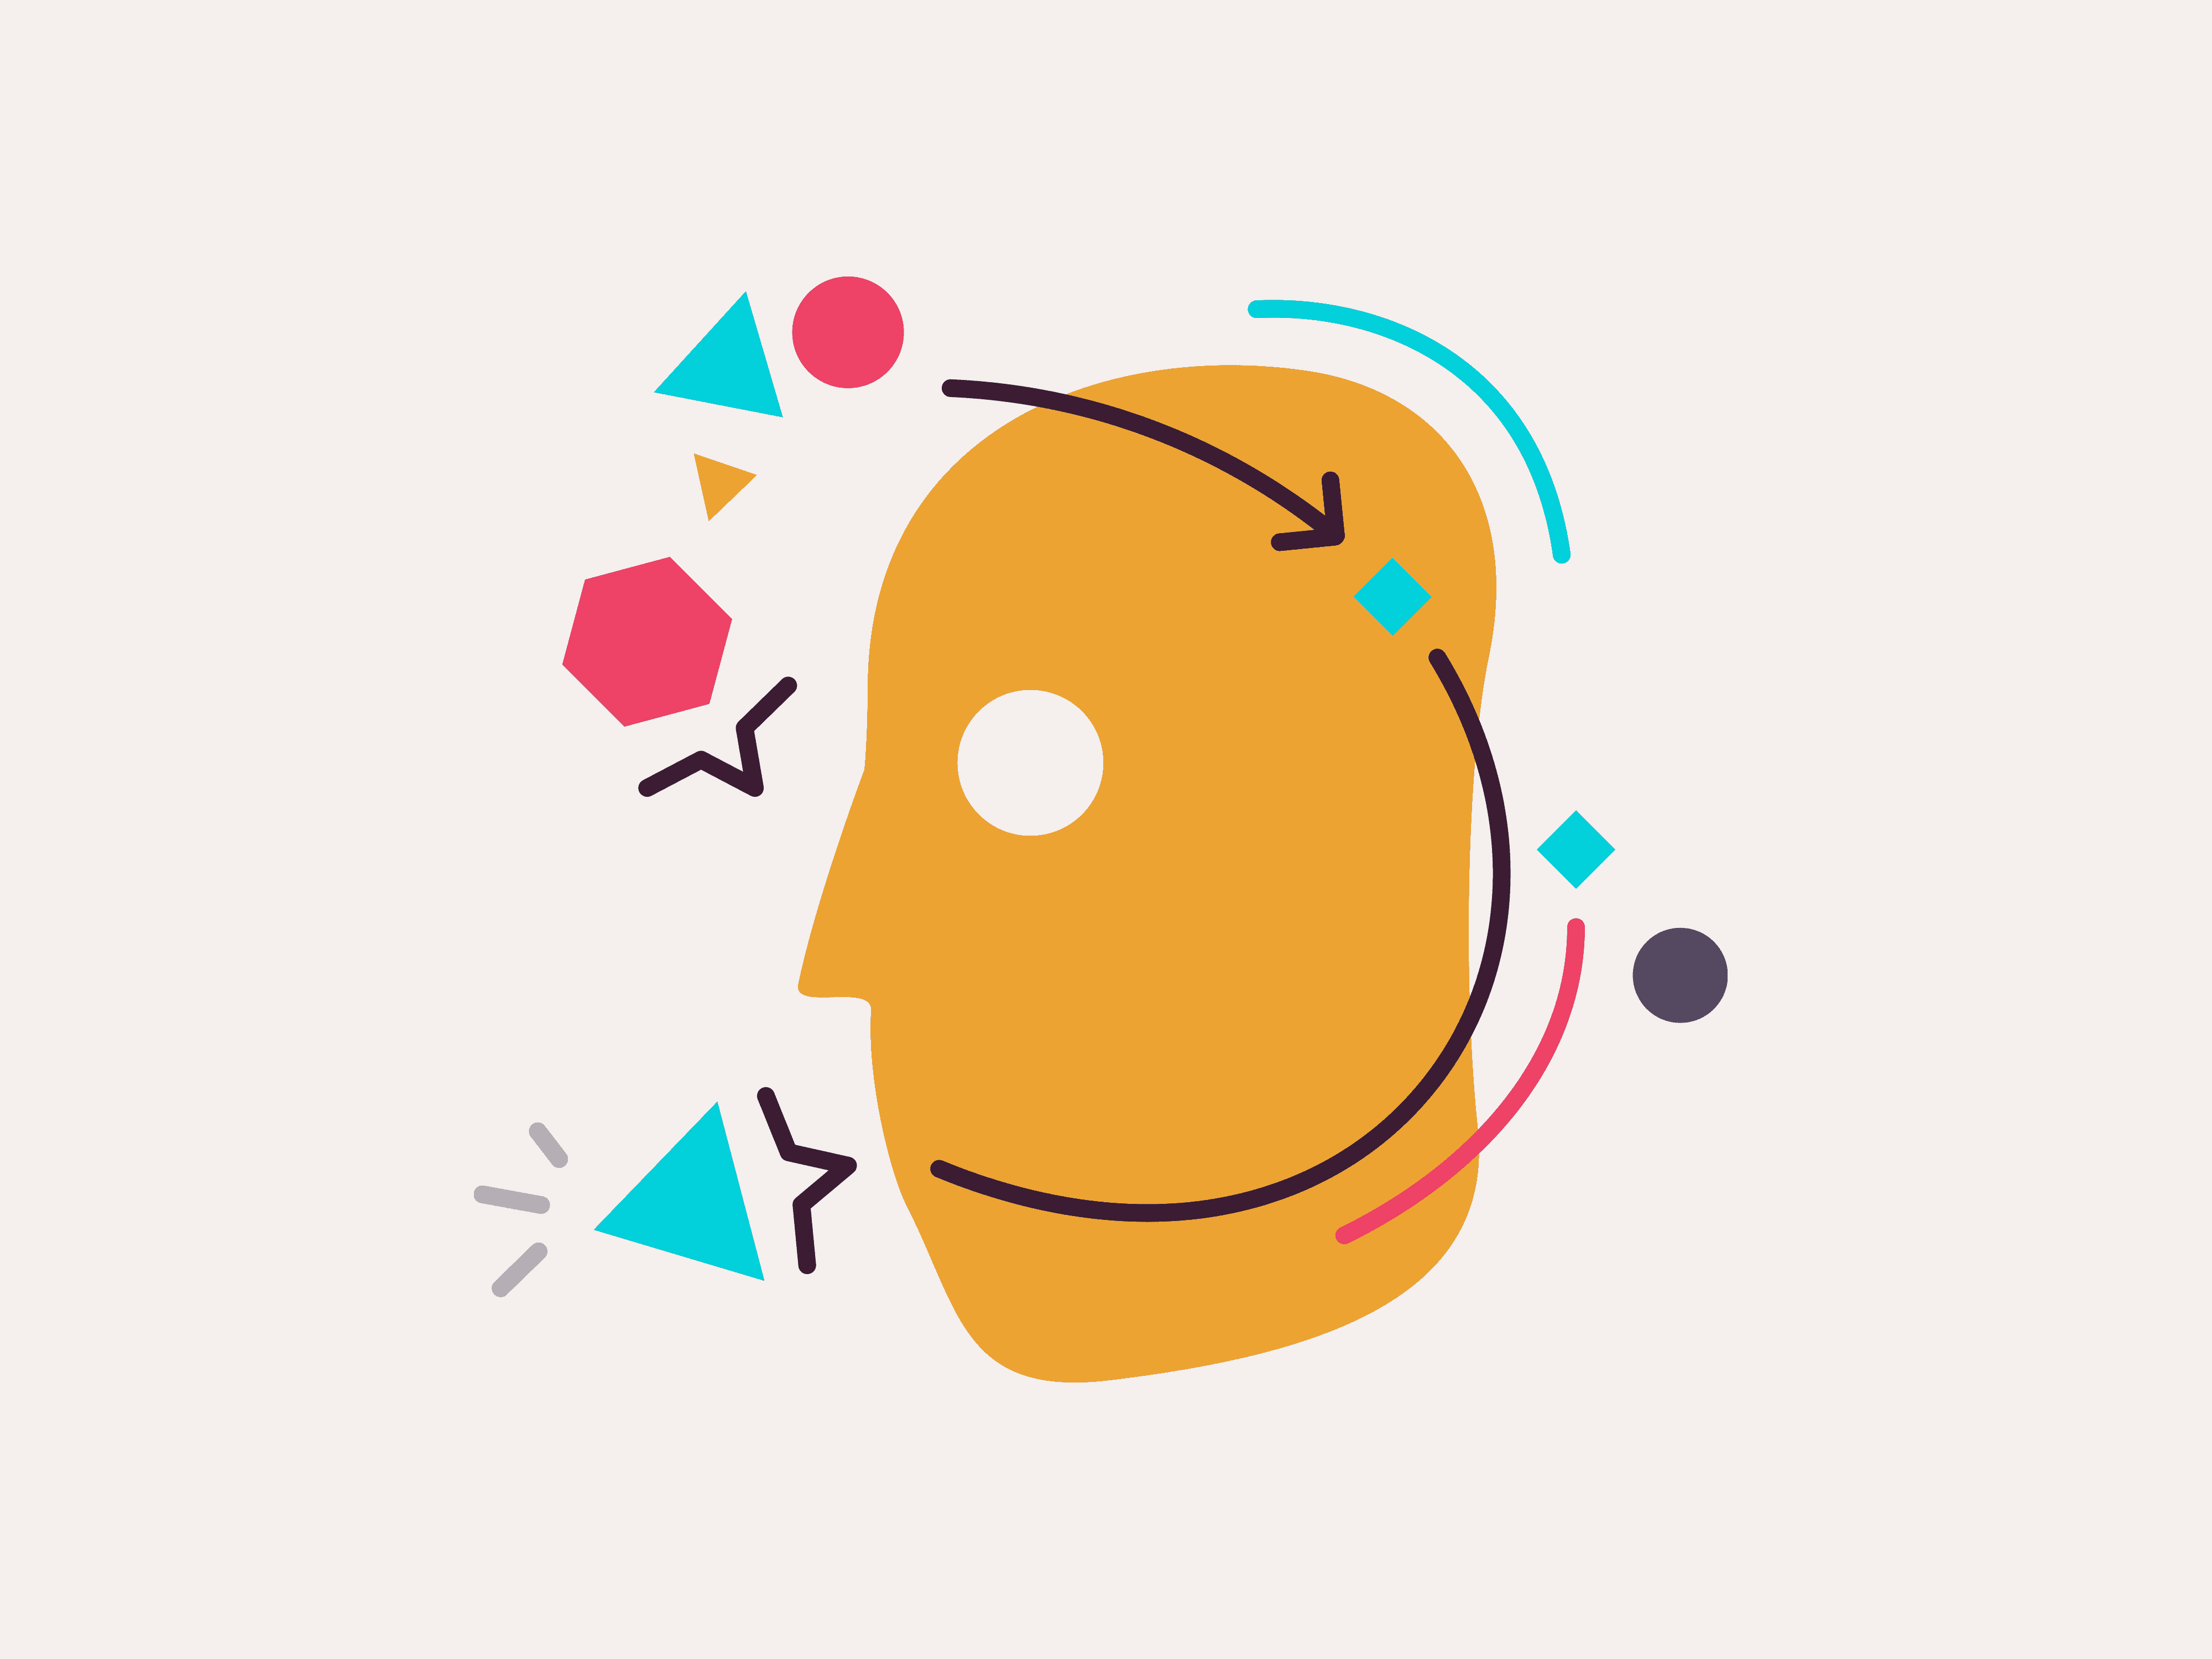 Illustration of a head with shapes floating around it